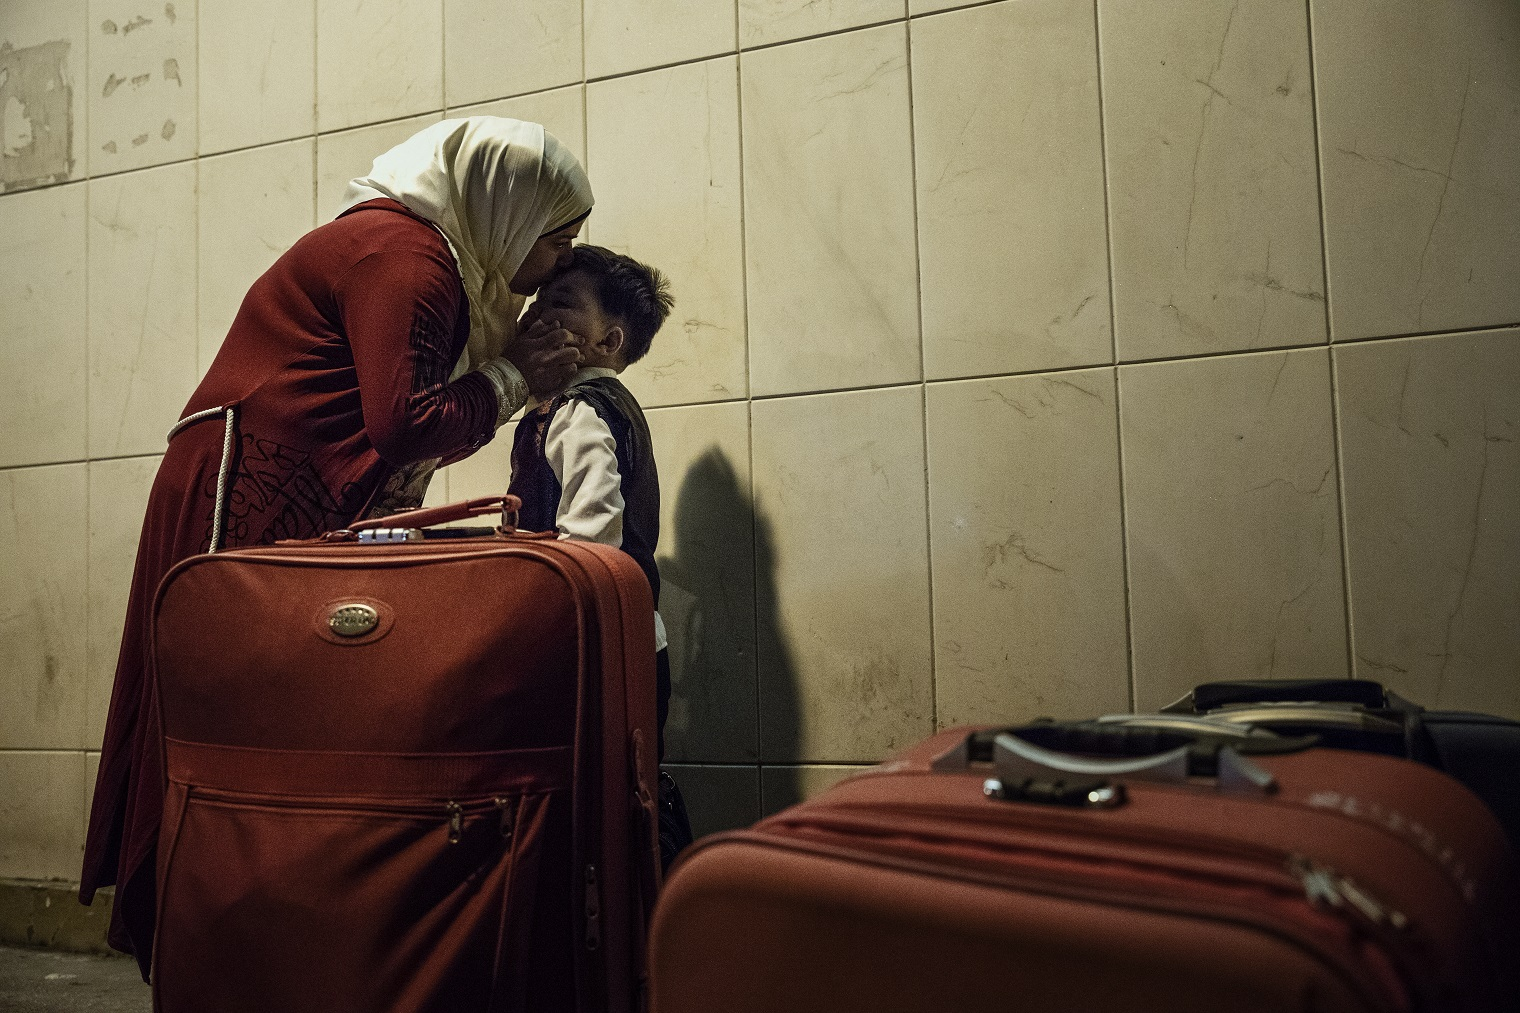 Syrian refugees in Lebanon. Aisha wipes away the tears from her son Zak as he says goodbye to his grandfather over the phone in Beirut, Lebanon. As the Syrian family waits for their taxi to the airport, today marks an end to a chapter in their lives where they have been living as refugees for several years. Recently, they found out that they are finally being resettled to Europe, where they will be able to start a new chapter of their lives. ©Muse Mohammed